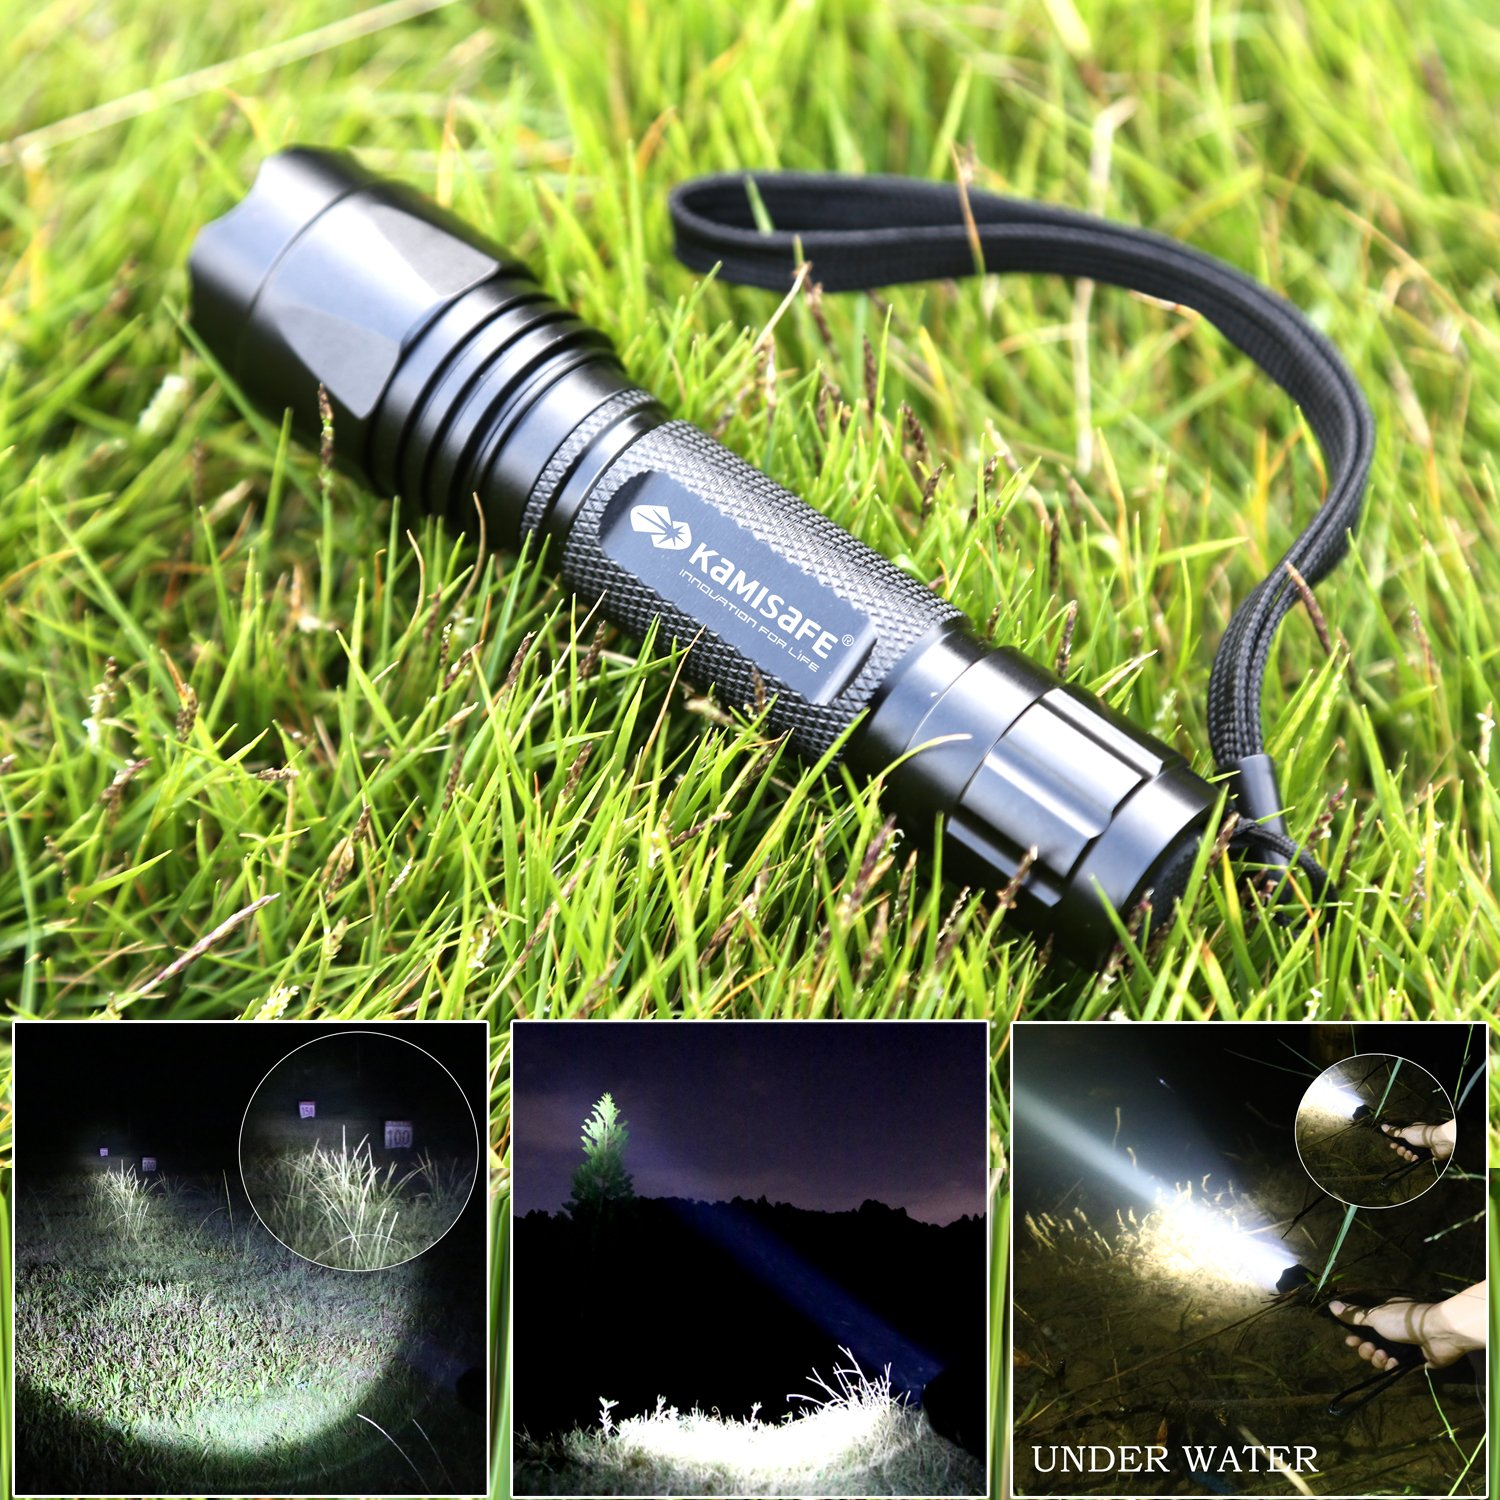 Kamisafe KM-9003 Compact 18650 LED Tactical Flashlight Torch Cree Q5 5 Modes Waterproof Outdoor Flashlight with Wrist Strap